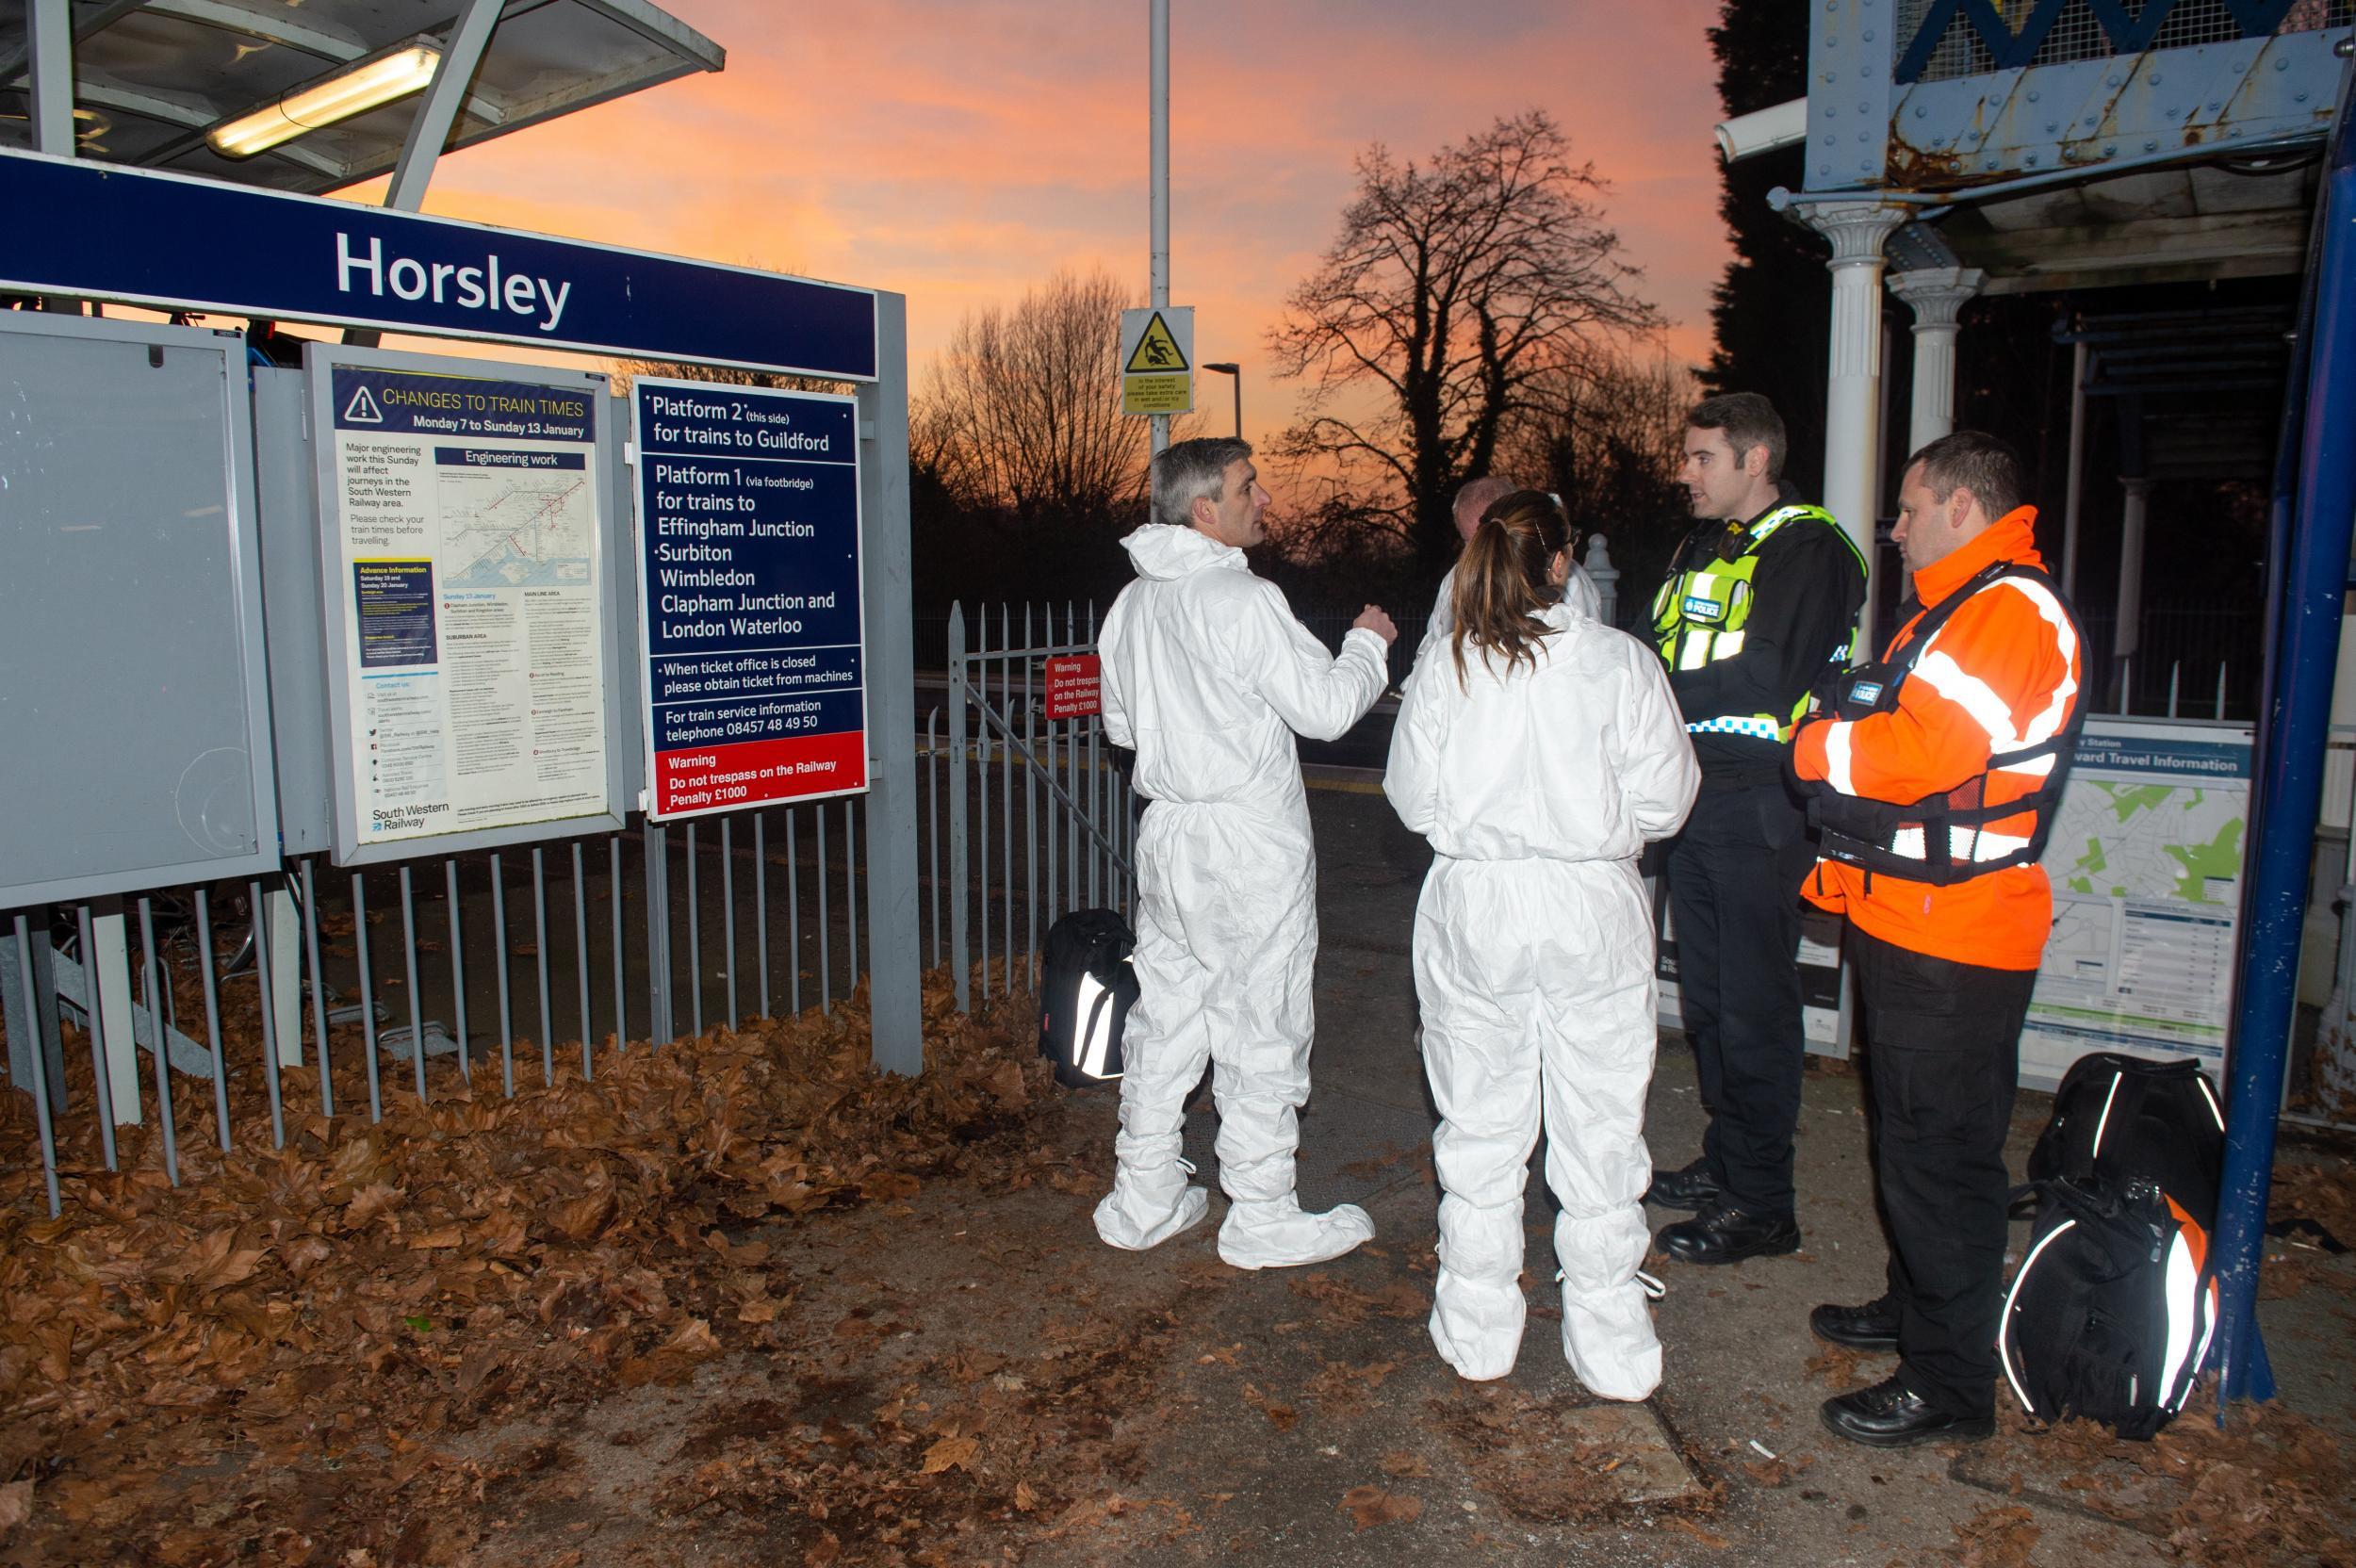 Killer on run after passenger stabbed to death in front of 14-year